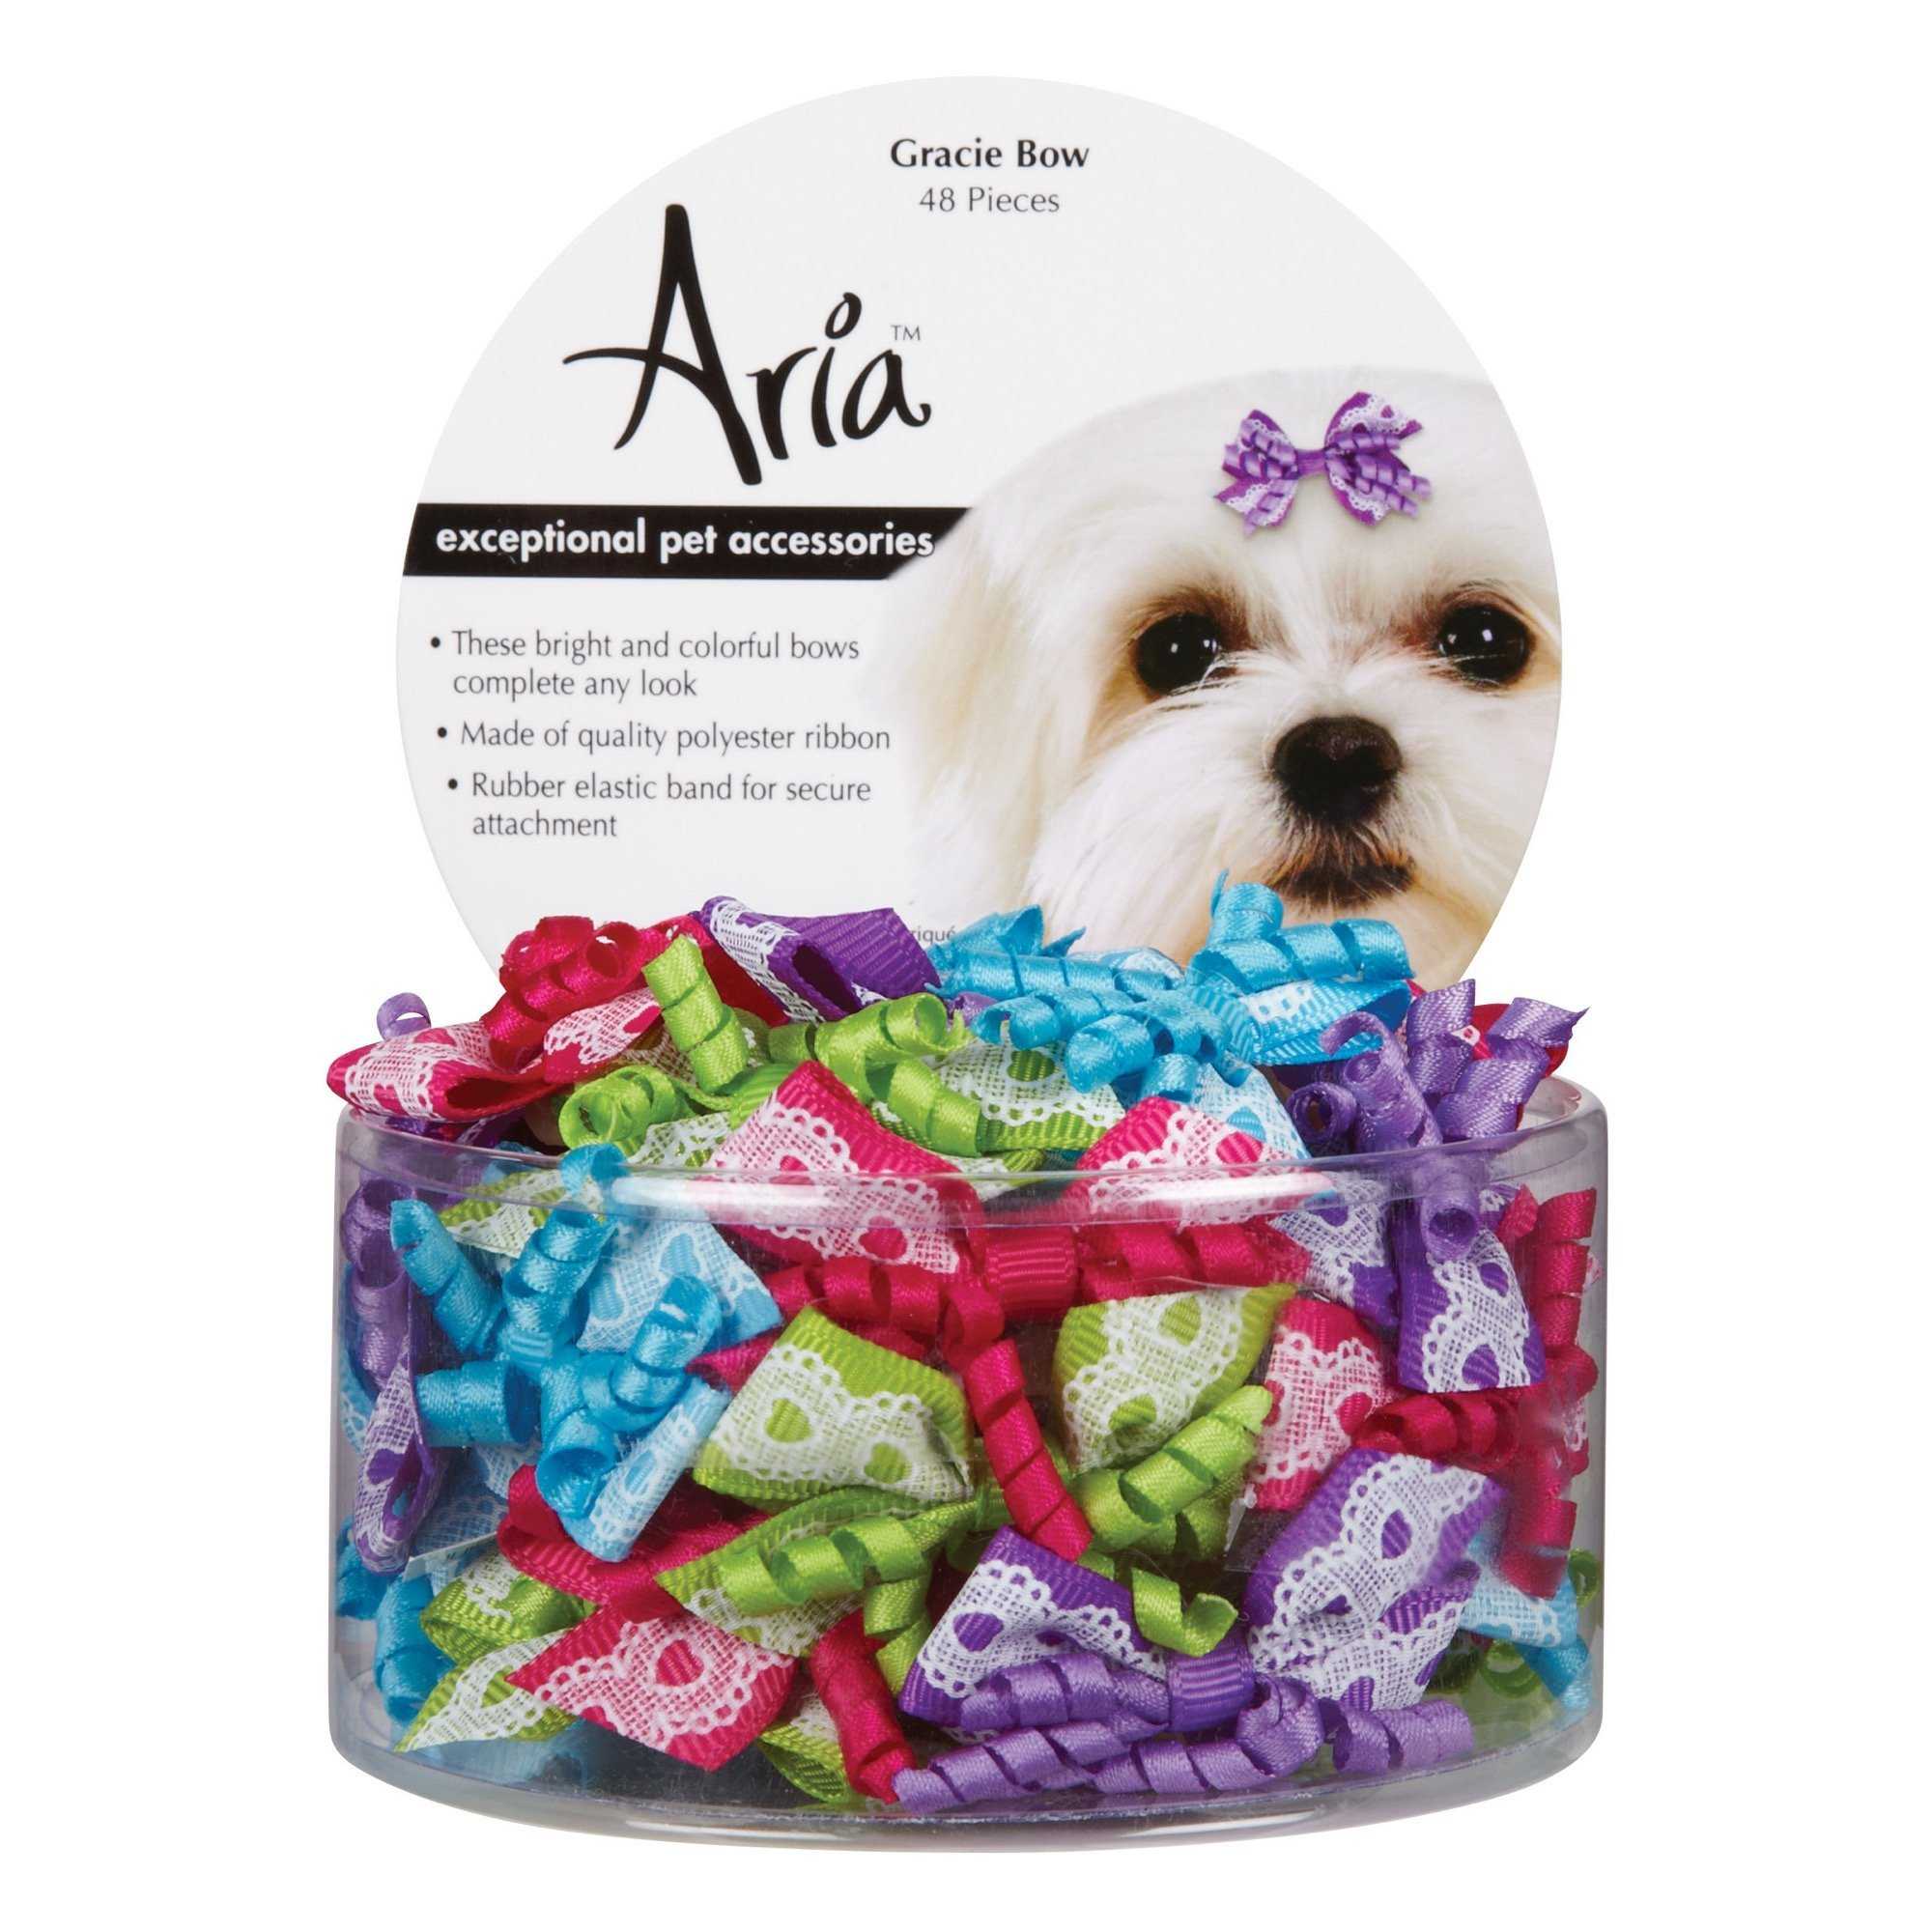 Aria Gracie Bows for Dogs, 48-Piece Canisters by Aria